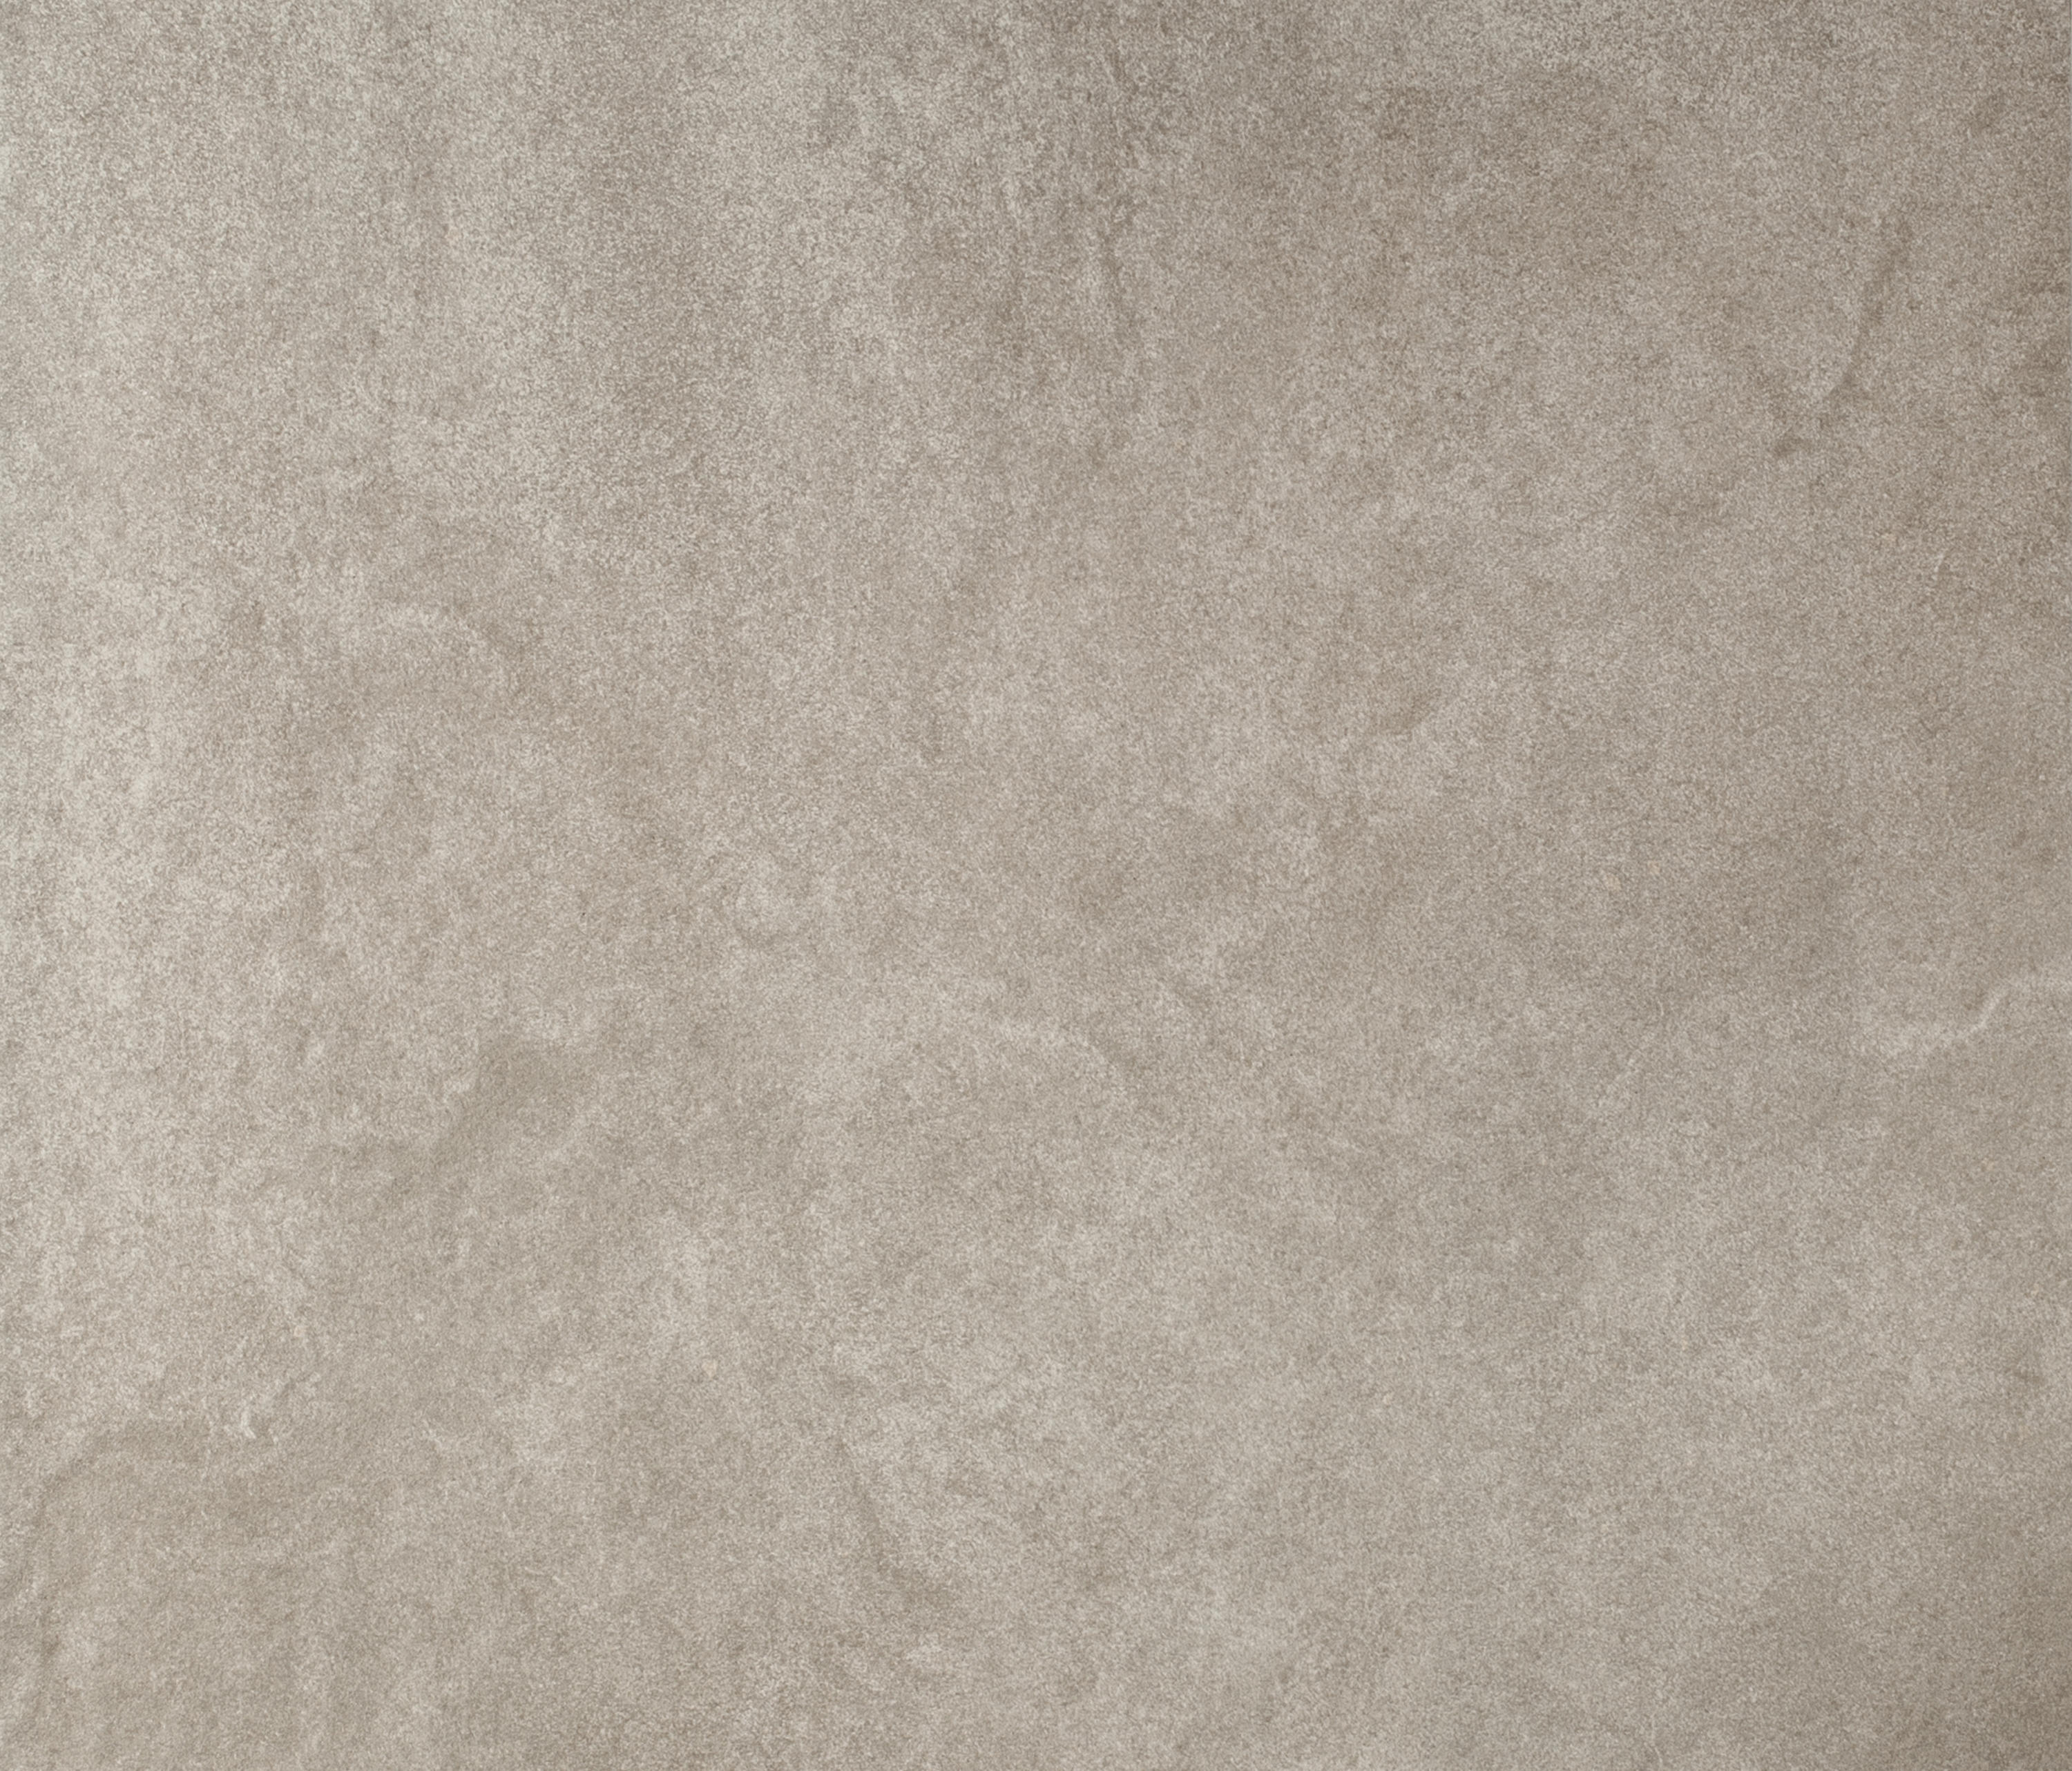 Wandfliese Natura Silk Valley Ceramic Tiles From Agrob Buchtal Architonic